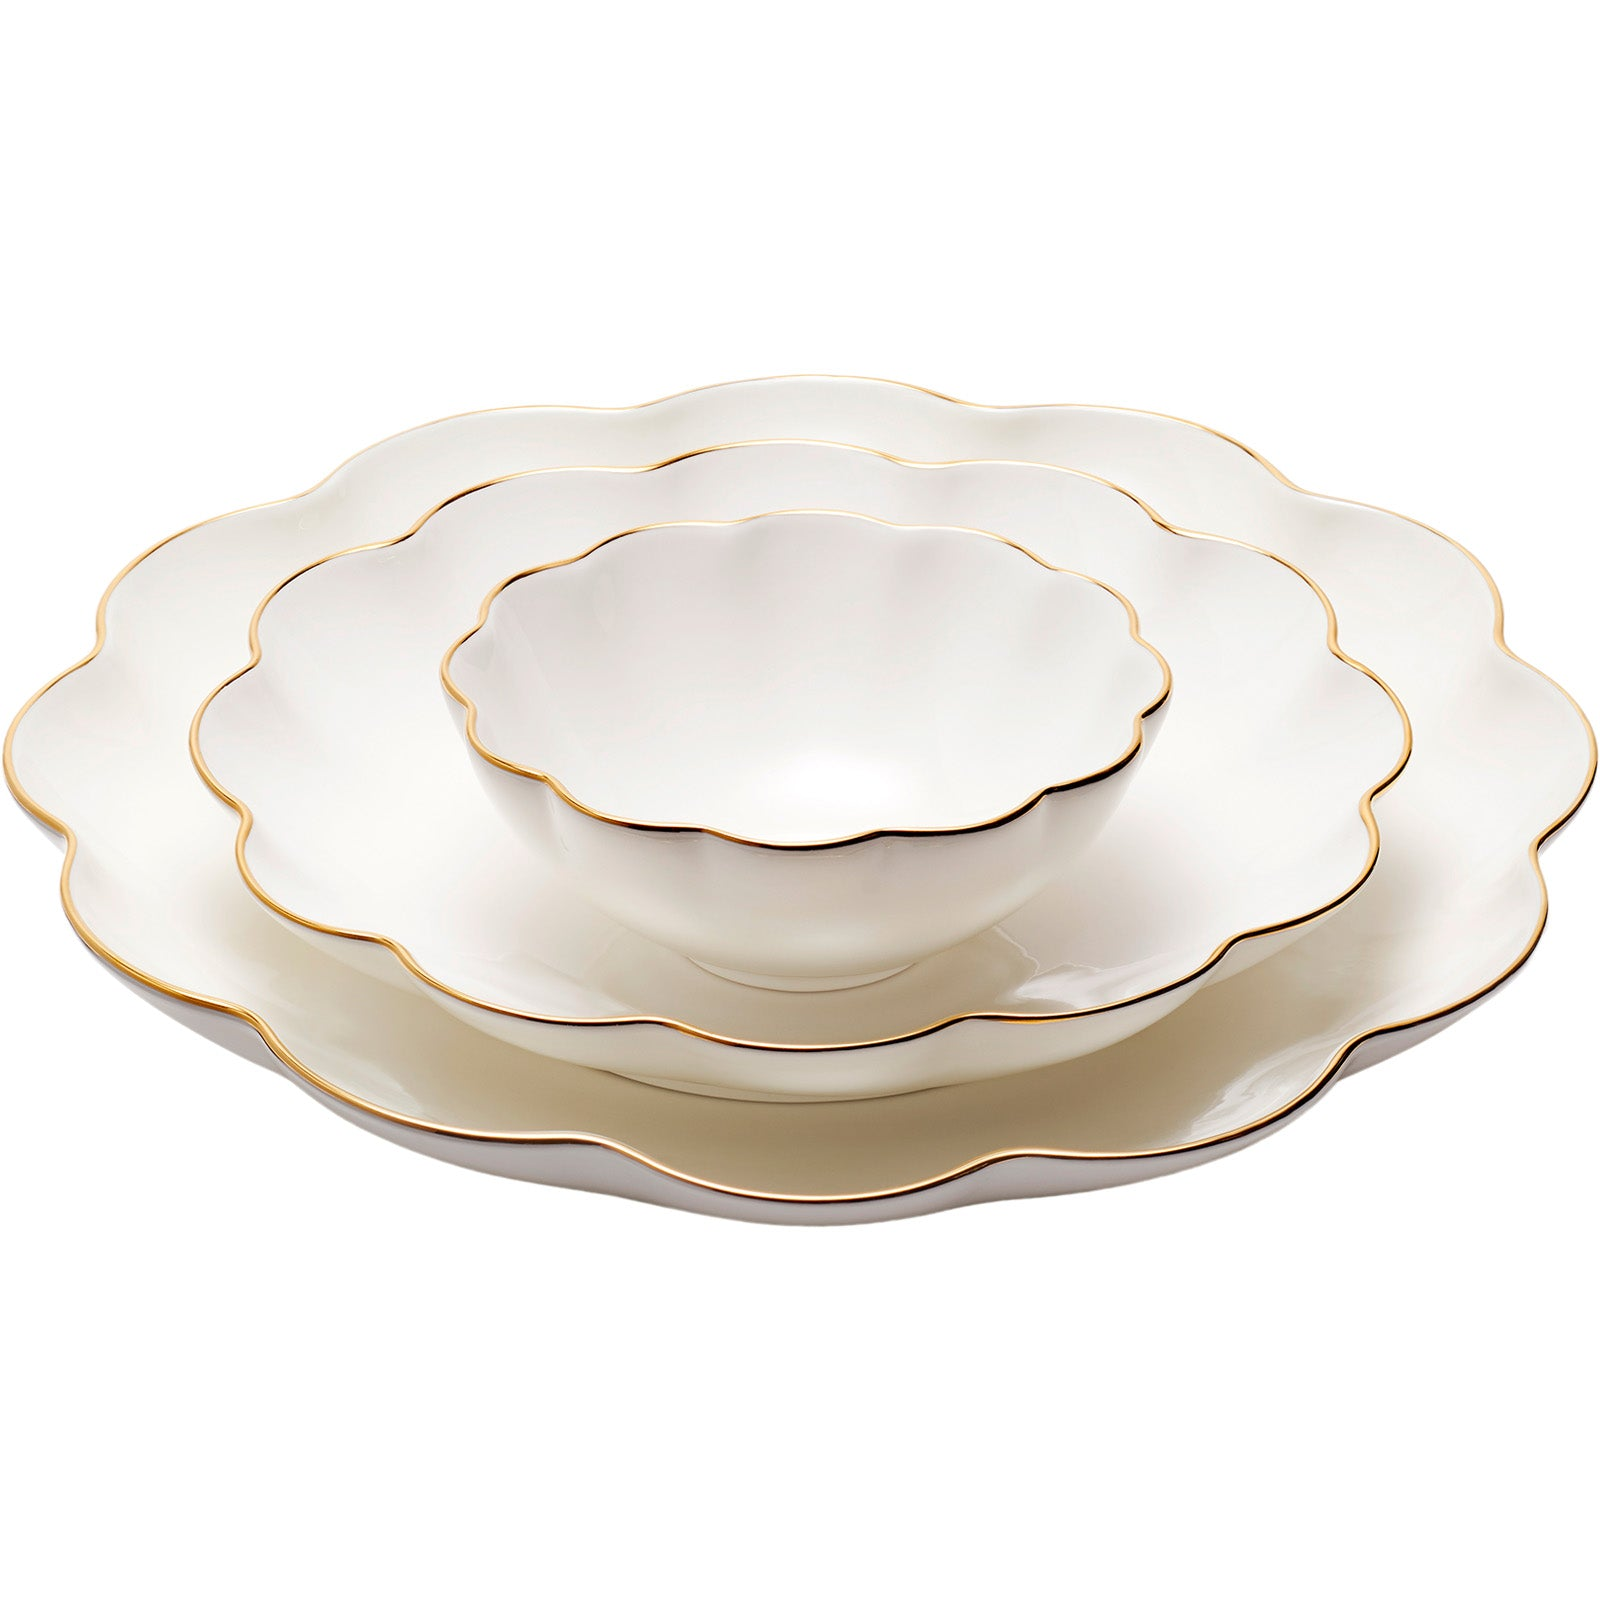 Set of 3 Scalloped Nesting Serving Dishes